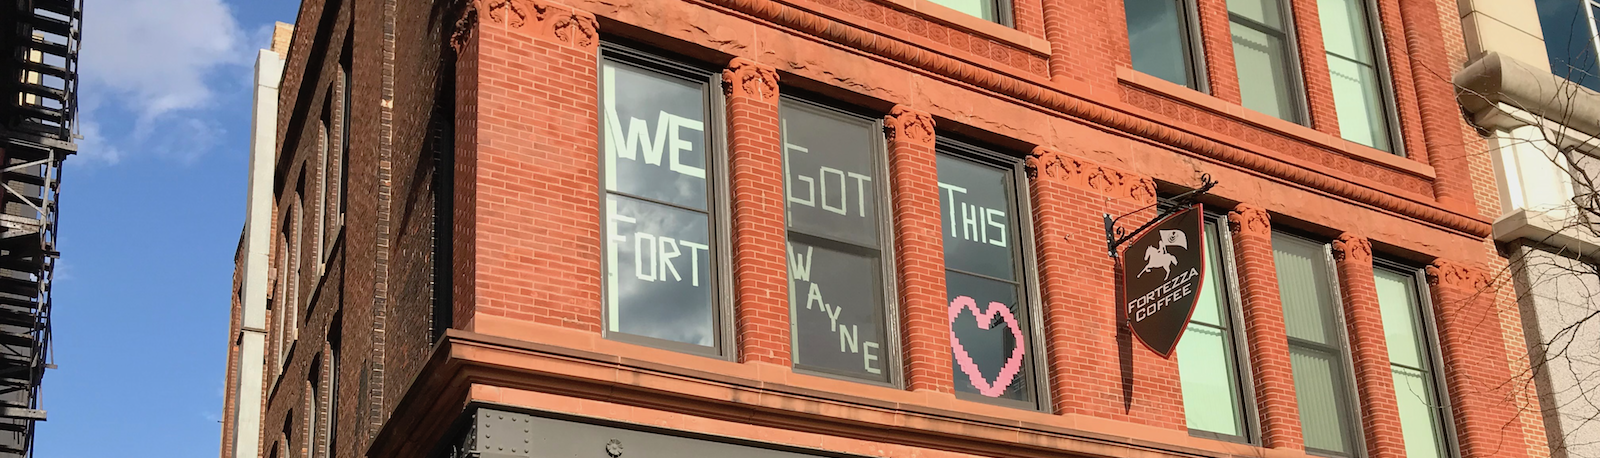 Residents on South Calhoun Street in downtown Fort Wayne share some encouragement.